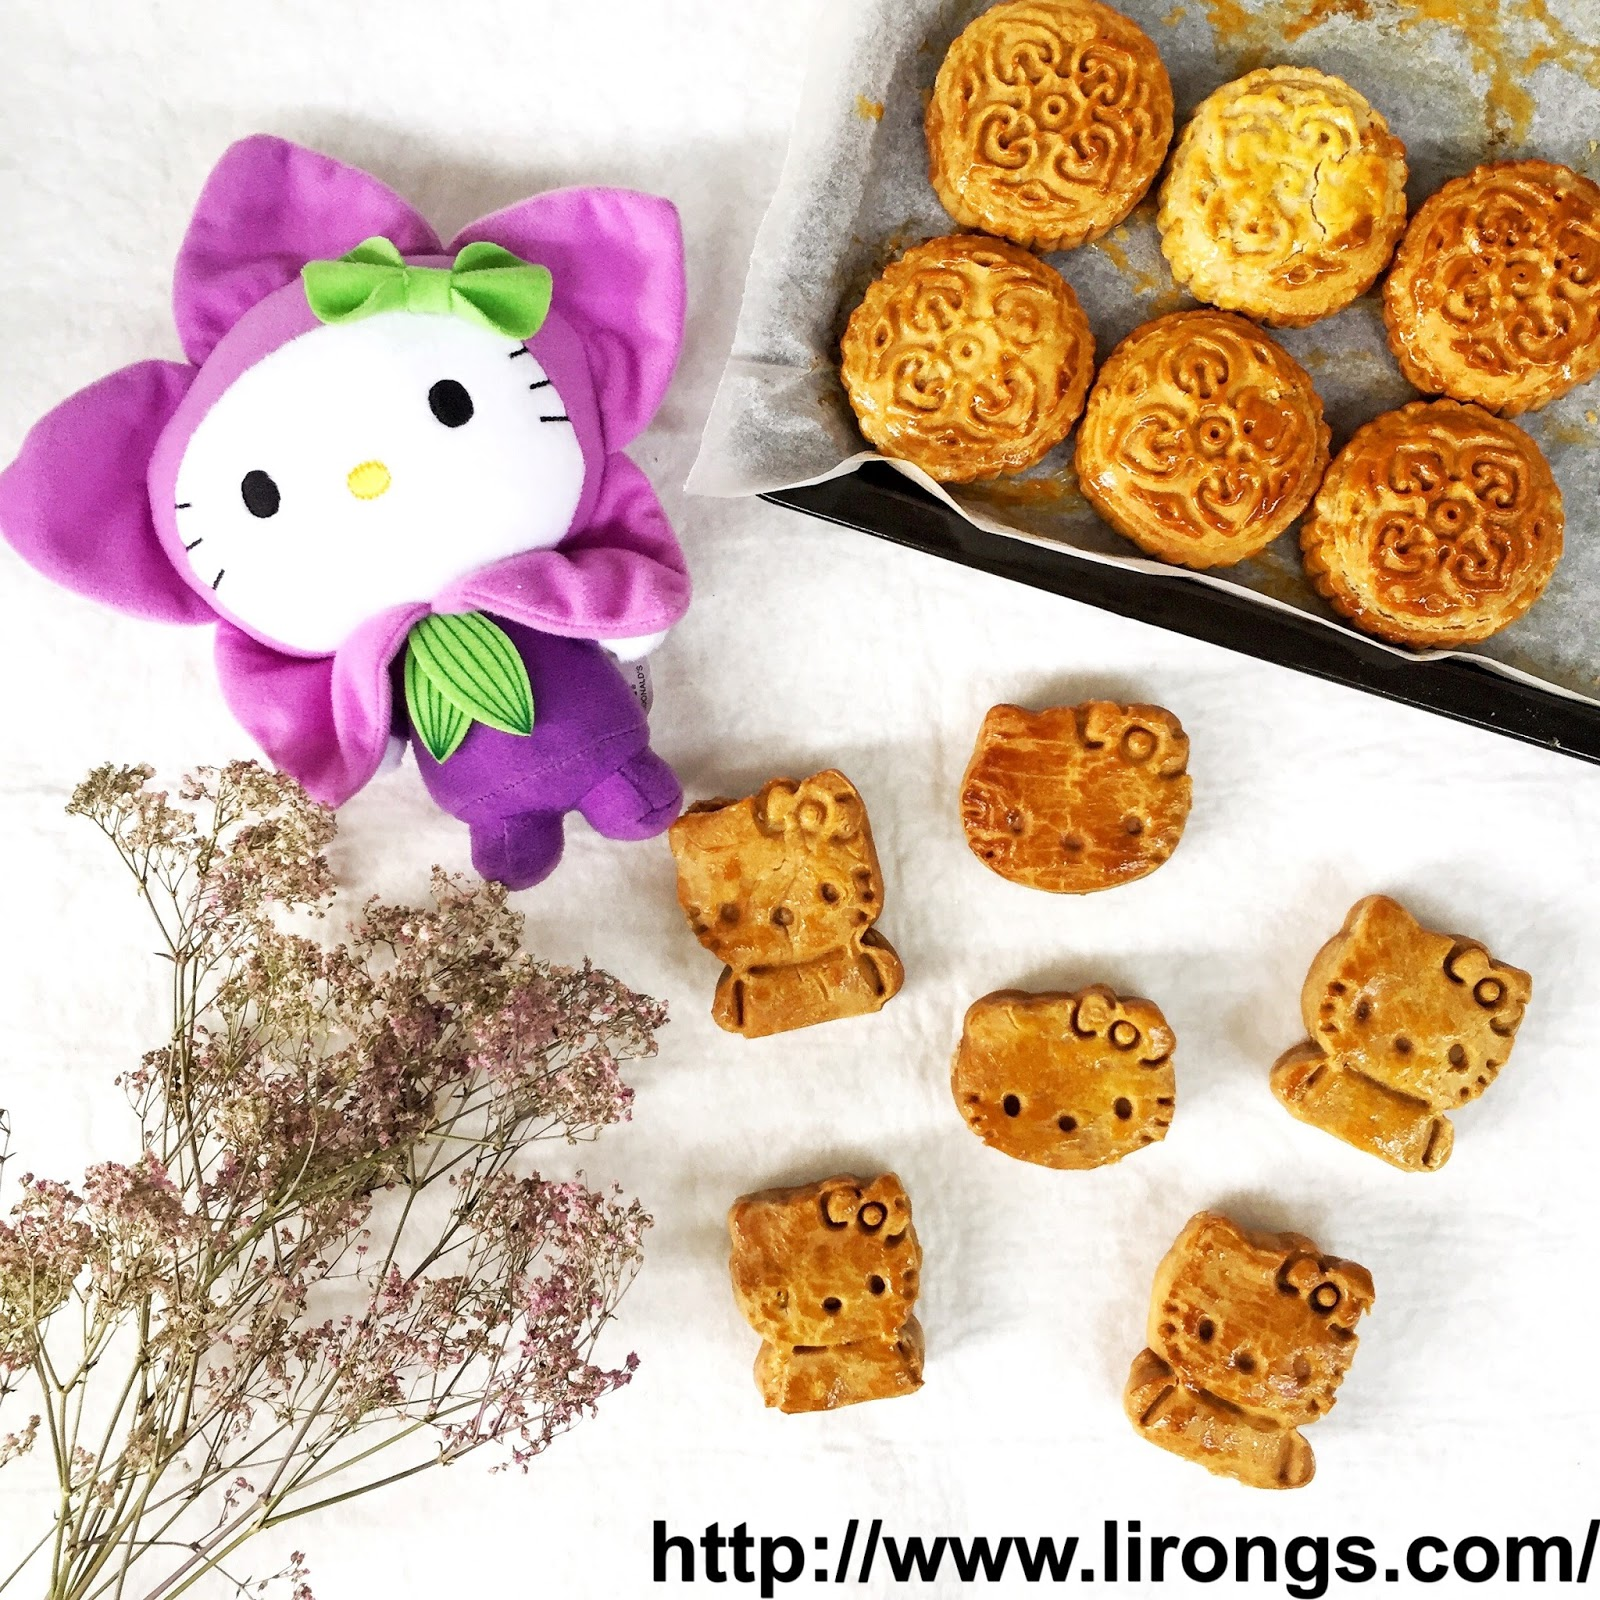 Lirong A Singapore Food And Lifestyle Blog Happy Mid Autumn Festival